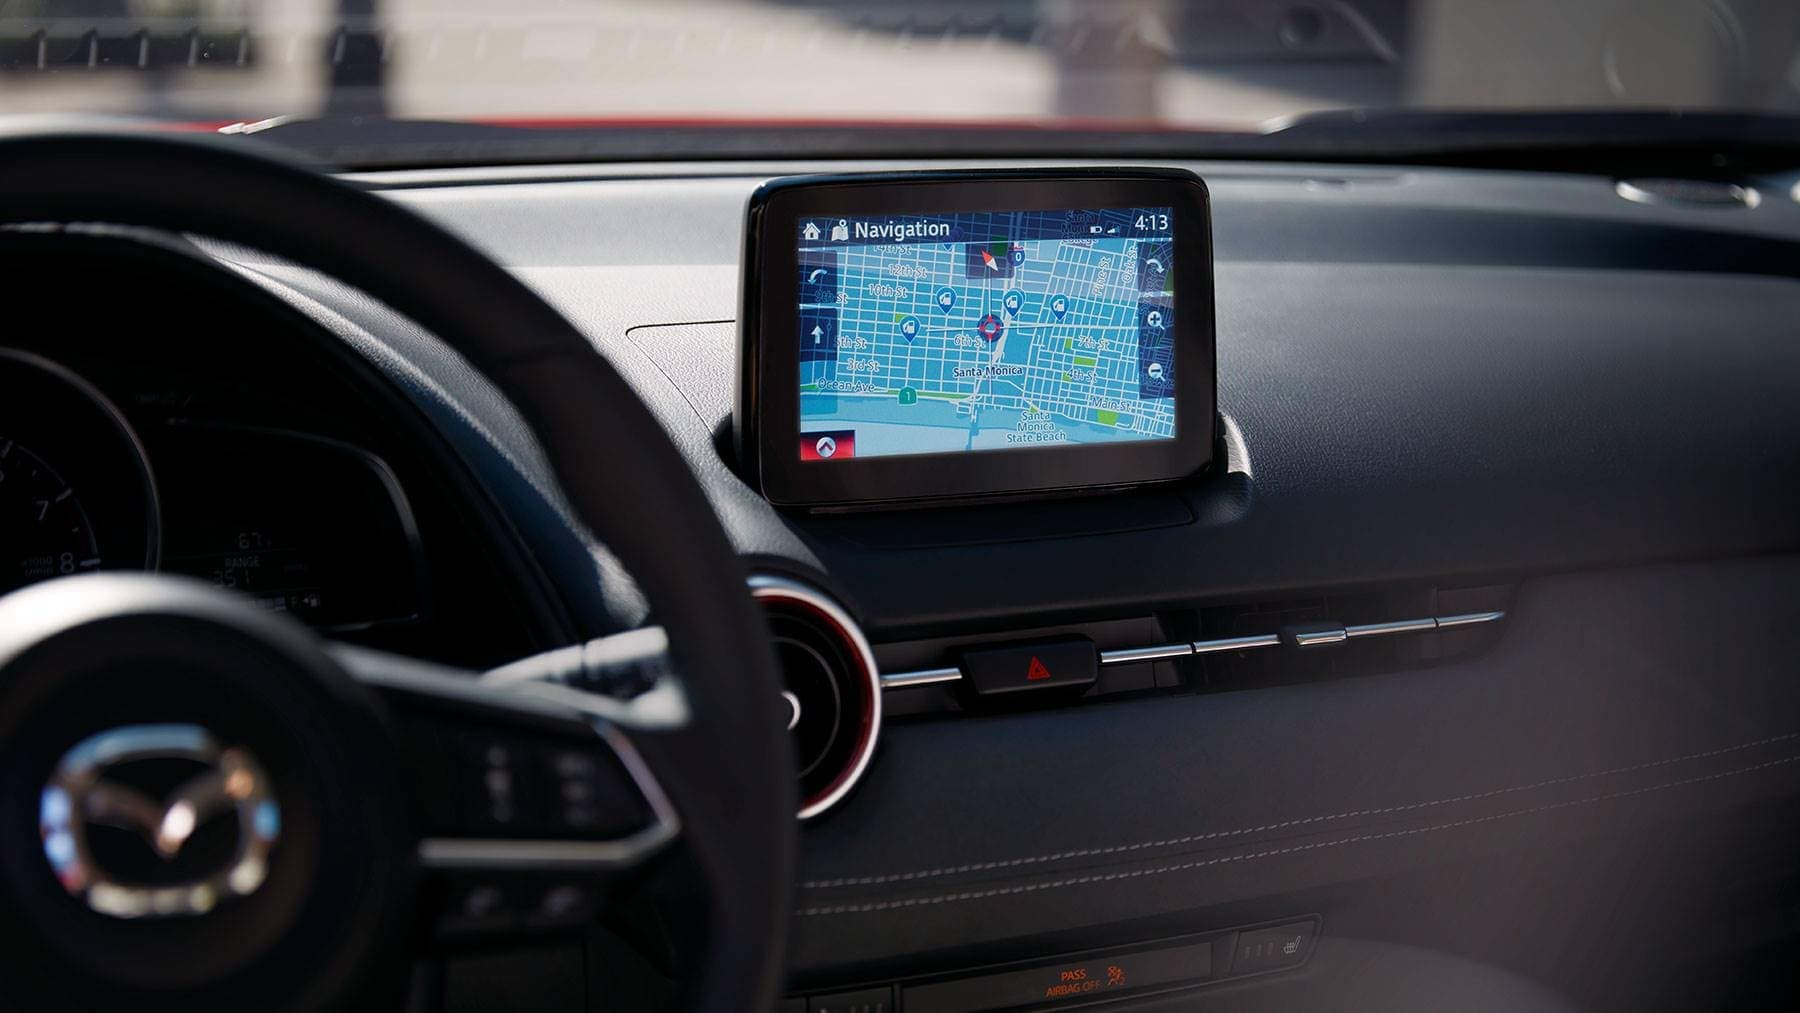 2019 Mazda CX-3 Dashboard Technology Features